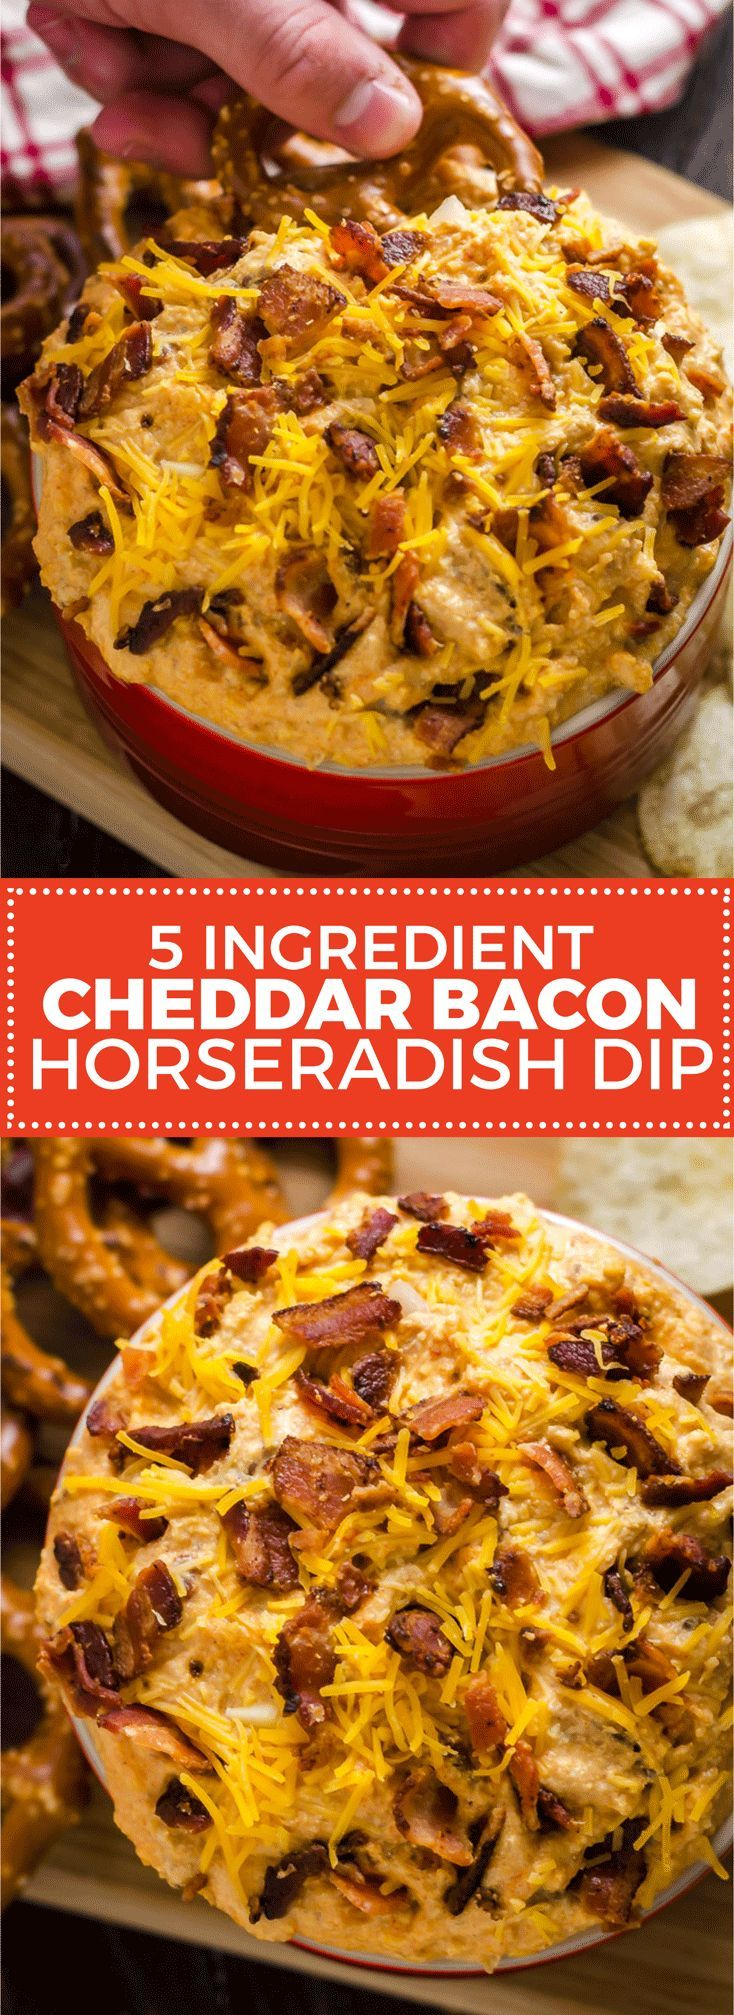 5 Ingredient Cheddar Bacon Horseradish Dip. Forget rushing around to buy food for the party, this simple dip brings it all. It uses just bacon, onions, cheese, sour cream, and horseradish, but is loaded with flavor. It makes a great spread, too!   hostthetoast.com